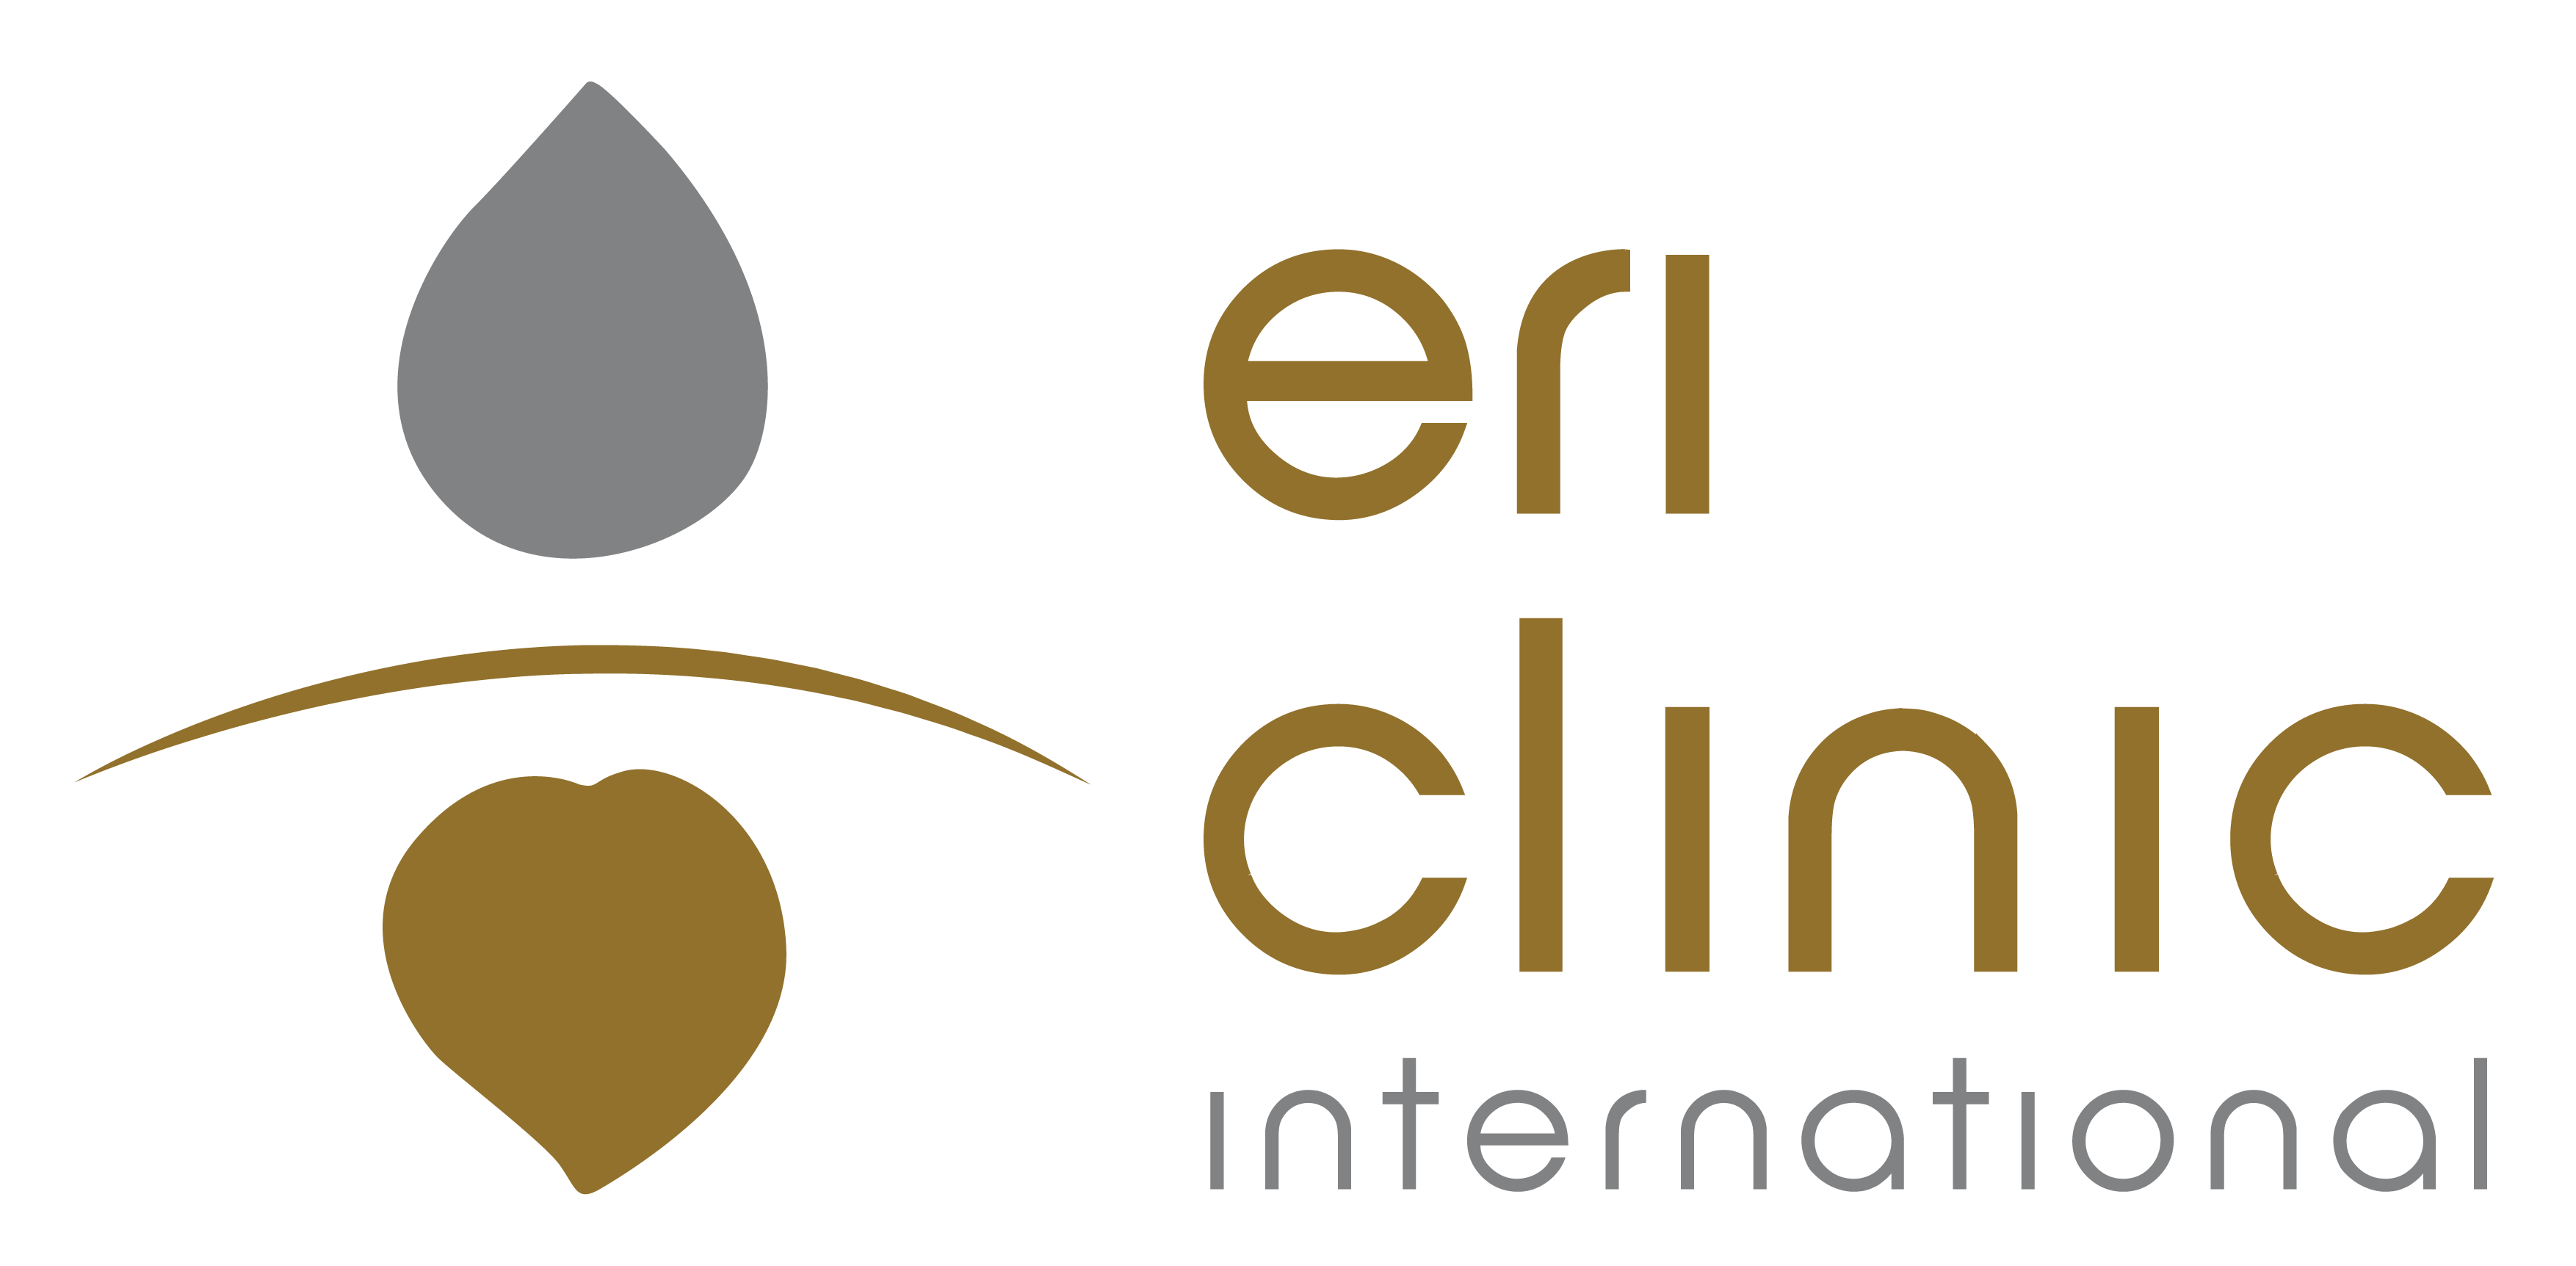 Eri Internaitonal - Experience beauty like never before